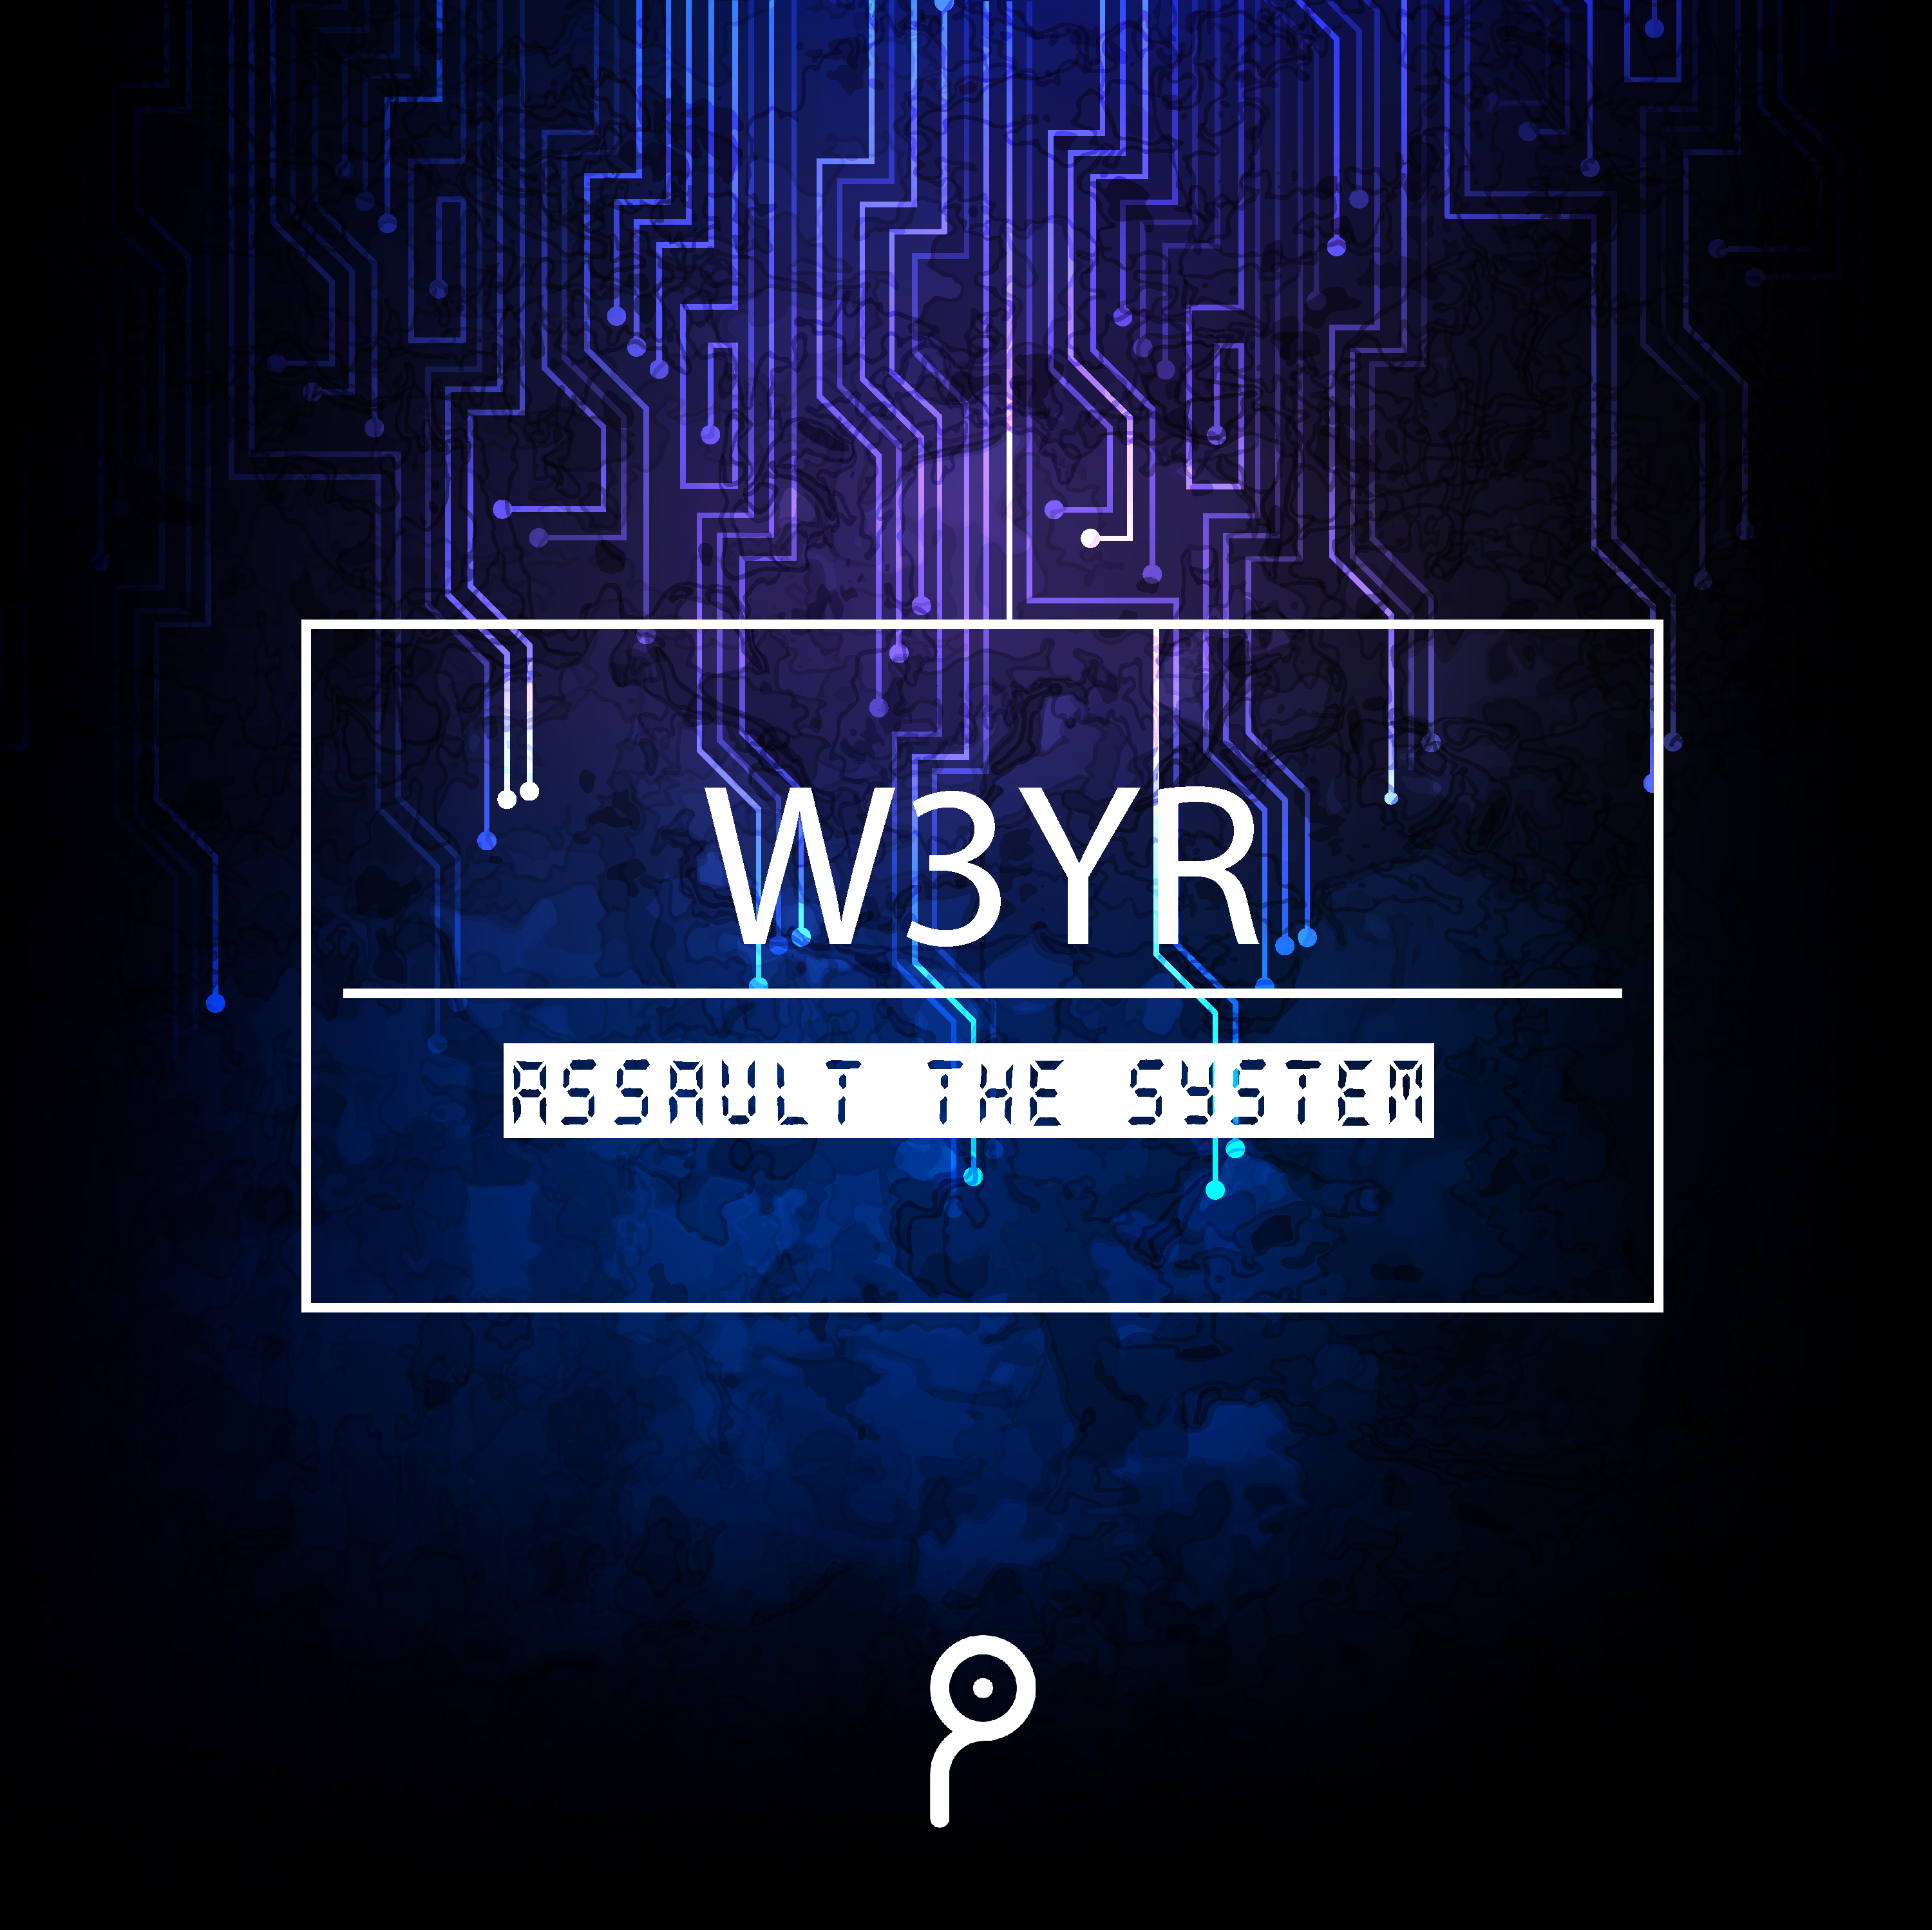 W3YR - ASSAULT THE SYSTEM EP